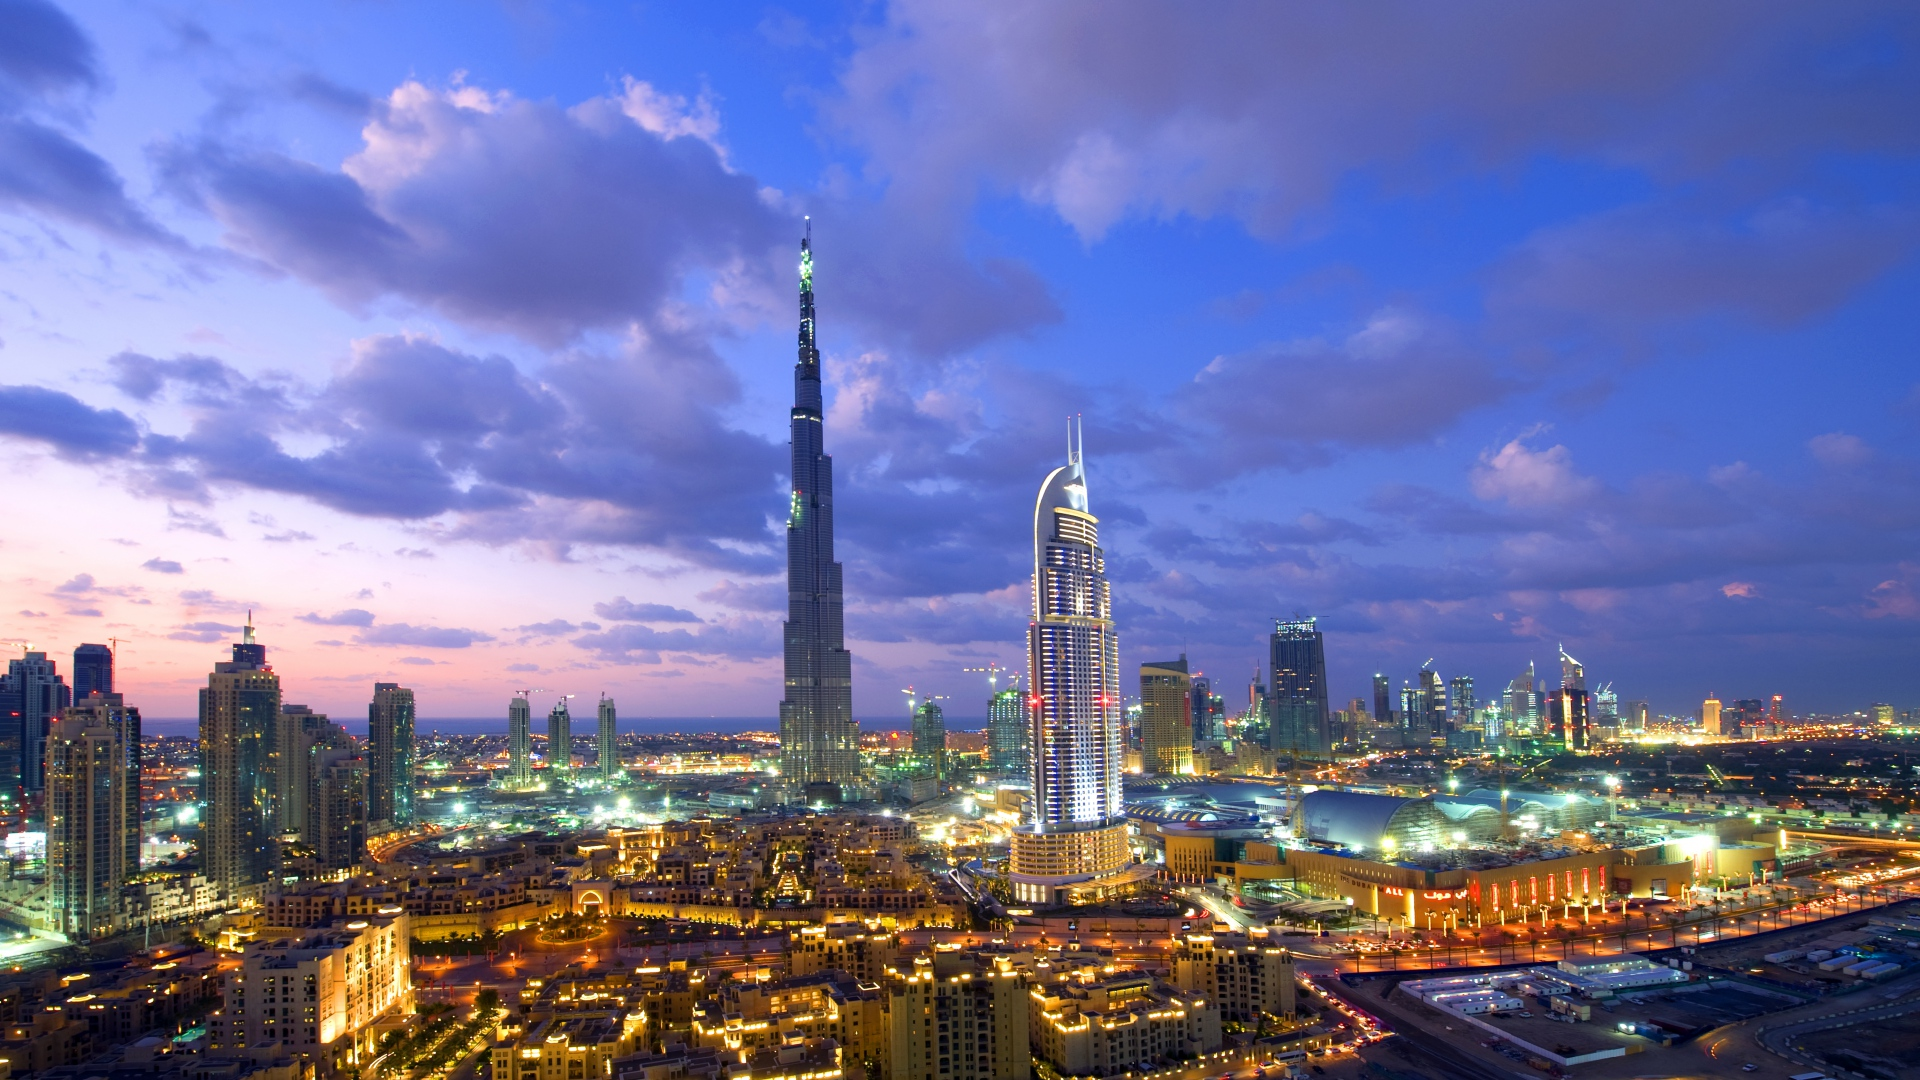 32 most beautiful dubai wallpapers for free download